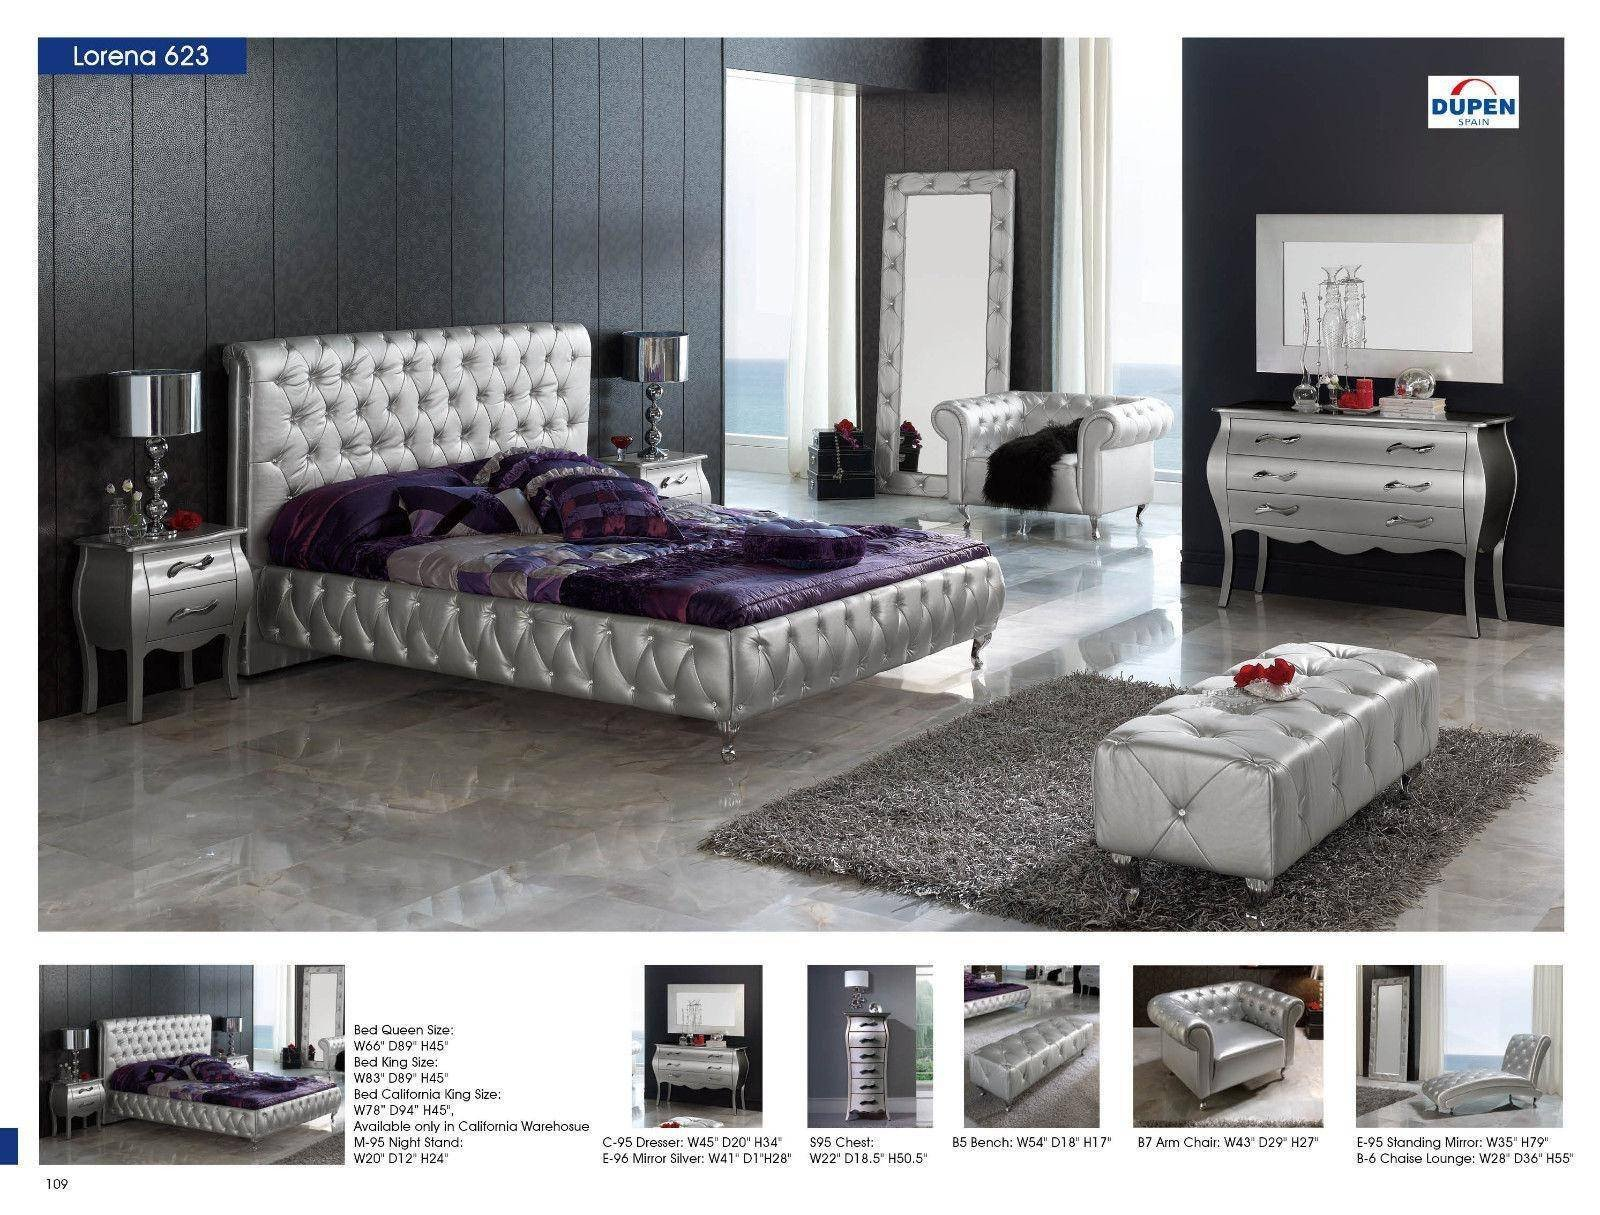 Purple and Silver Bedroom Inspirational Esf 623 Lorena Silver button Tufted Queen Bedroom Set 3